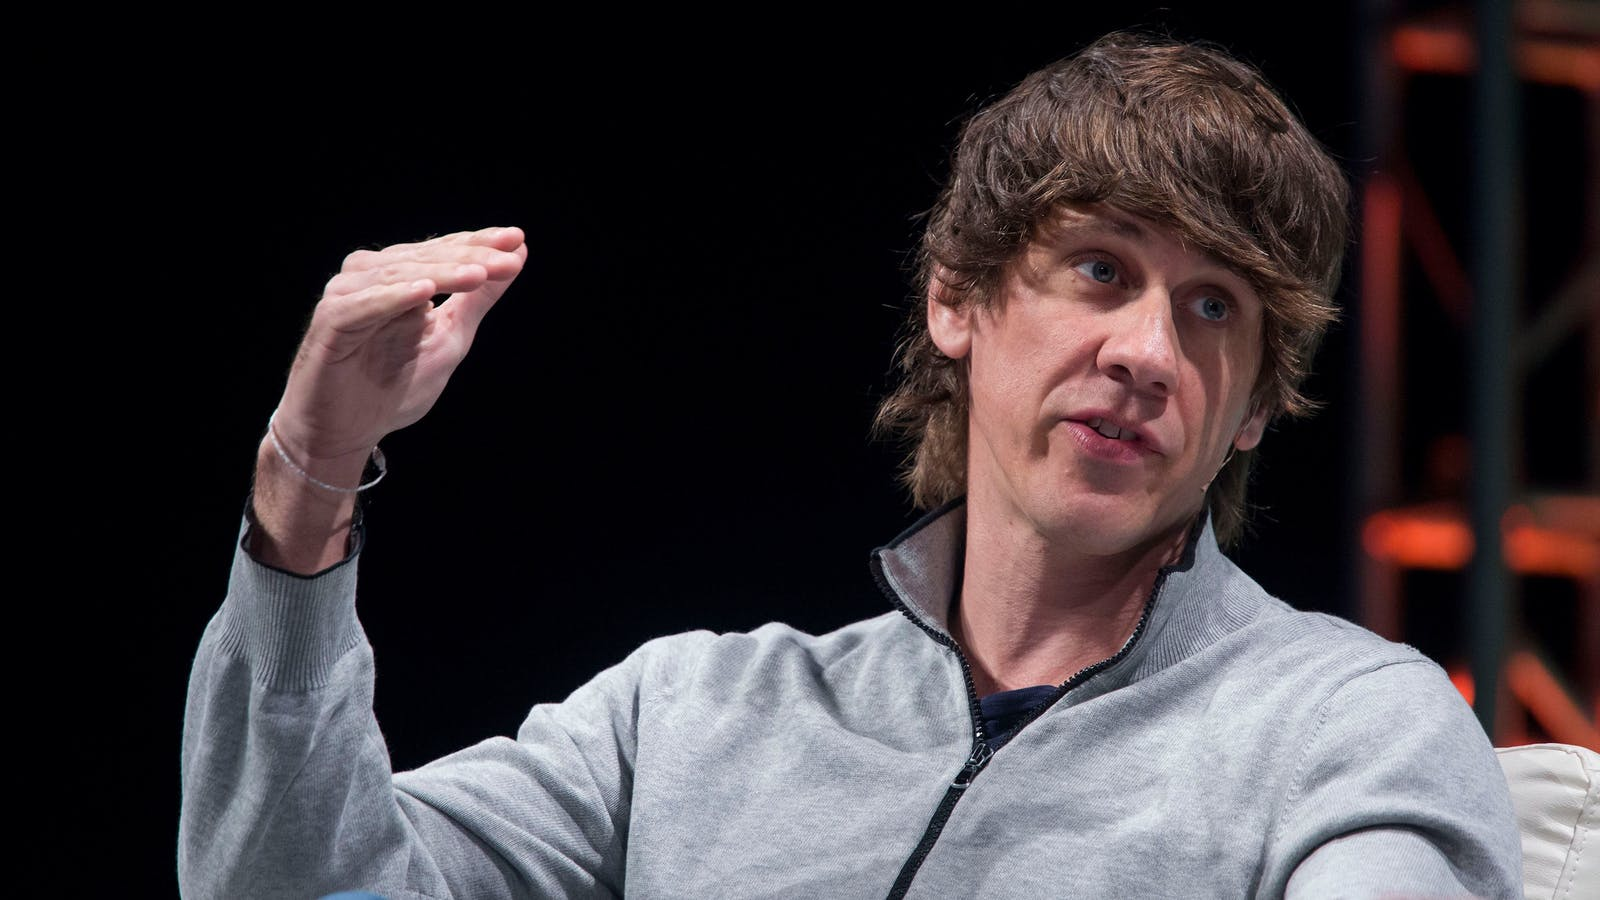 Foursquare co-founder Dennis Crowley. Photo by Bloomberg.